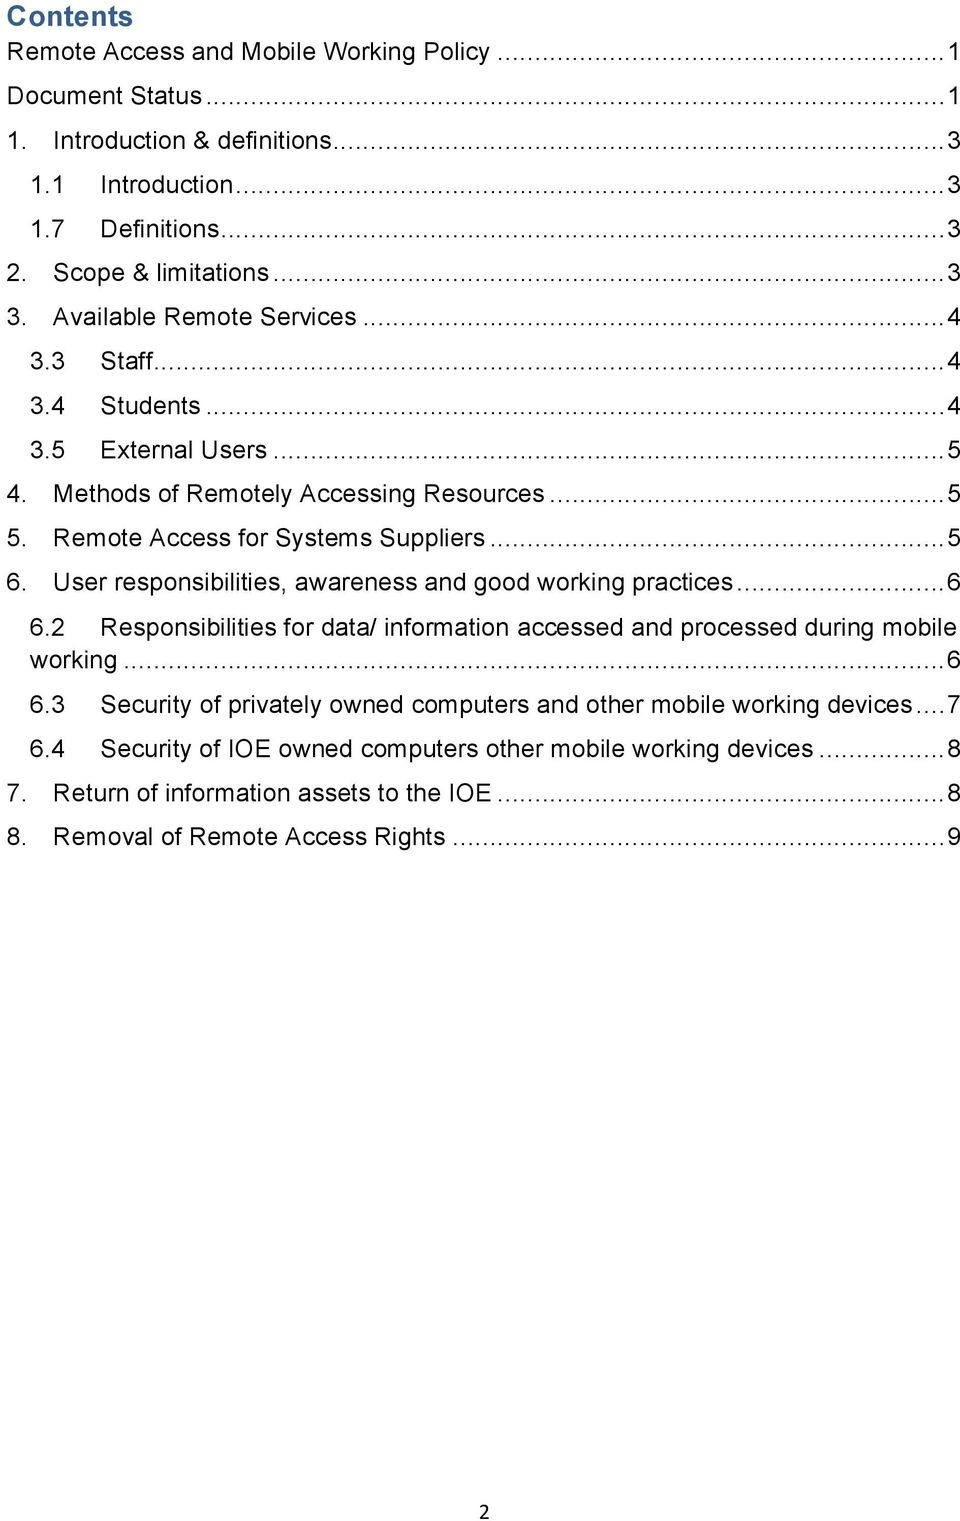 User responsibilities, awareness and good working practices... 6 6.2 Responsibilities for data/ information accessed and processed during mobile working... 6 6.3 Security of privately owned computers and other mobile working devices.